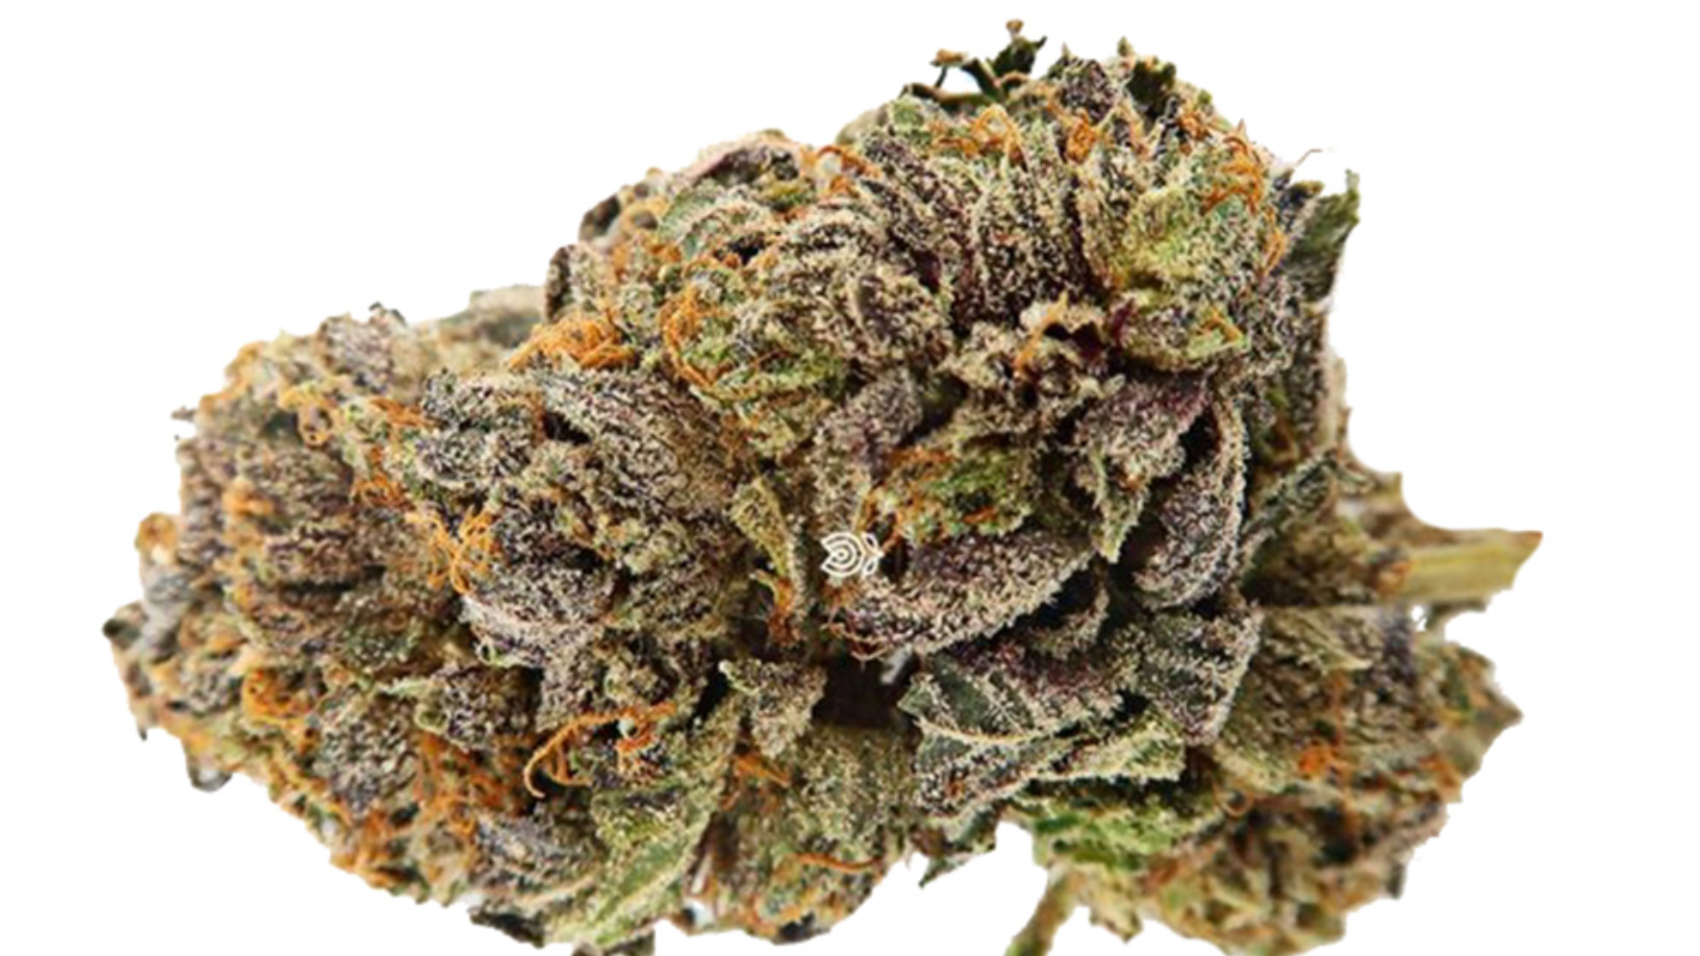 Dr-Who-Strain-weed-3